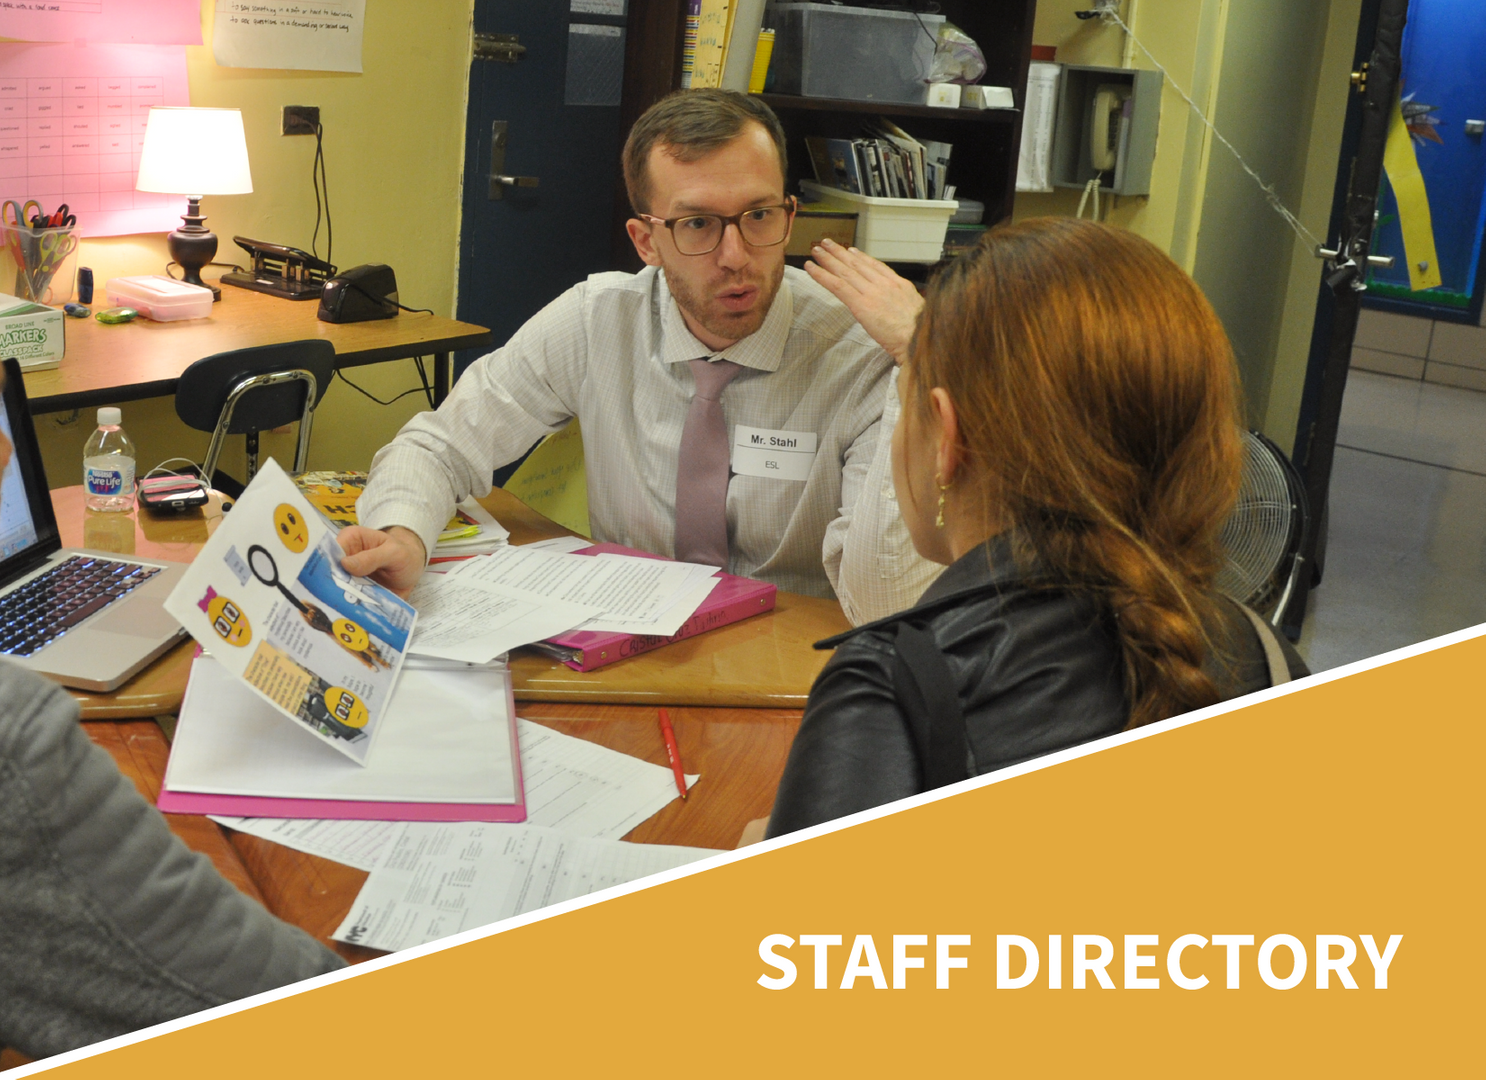 Staff Directory - ESL teacher working with students